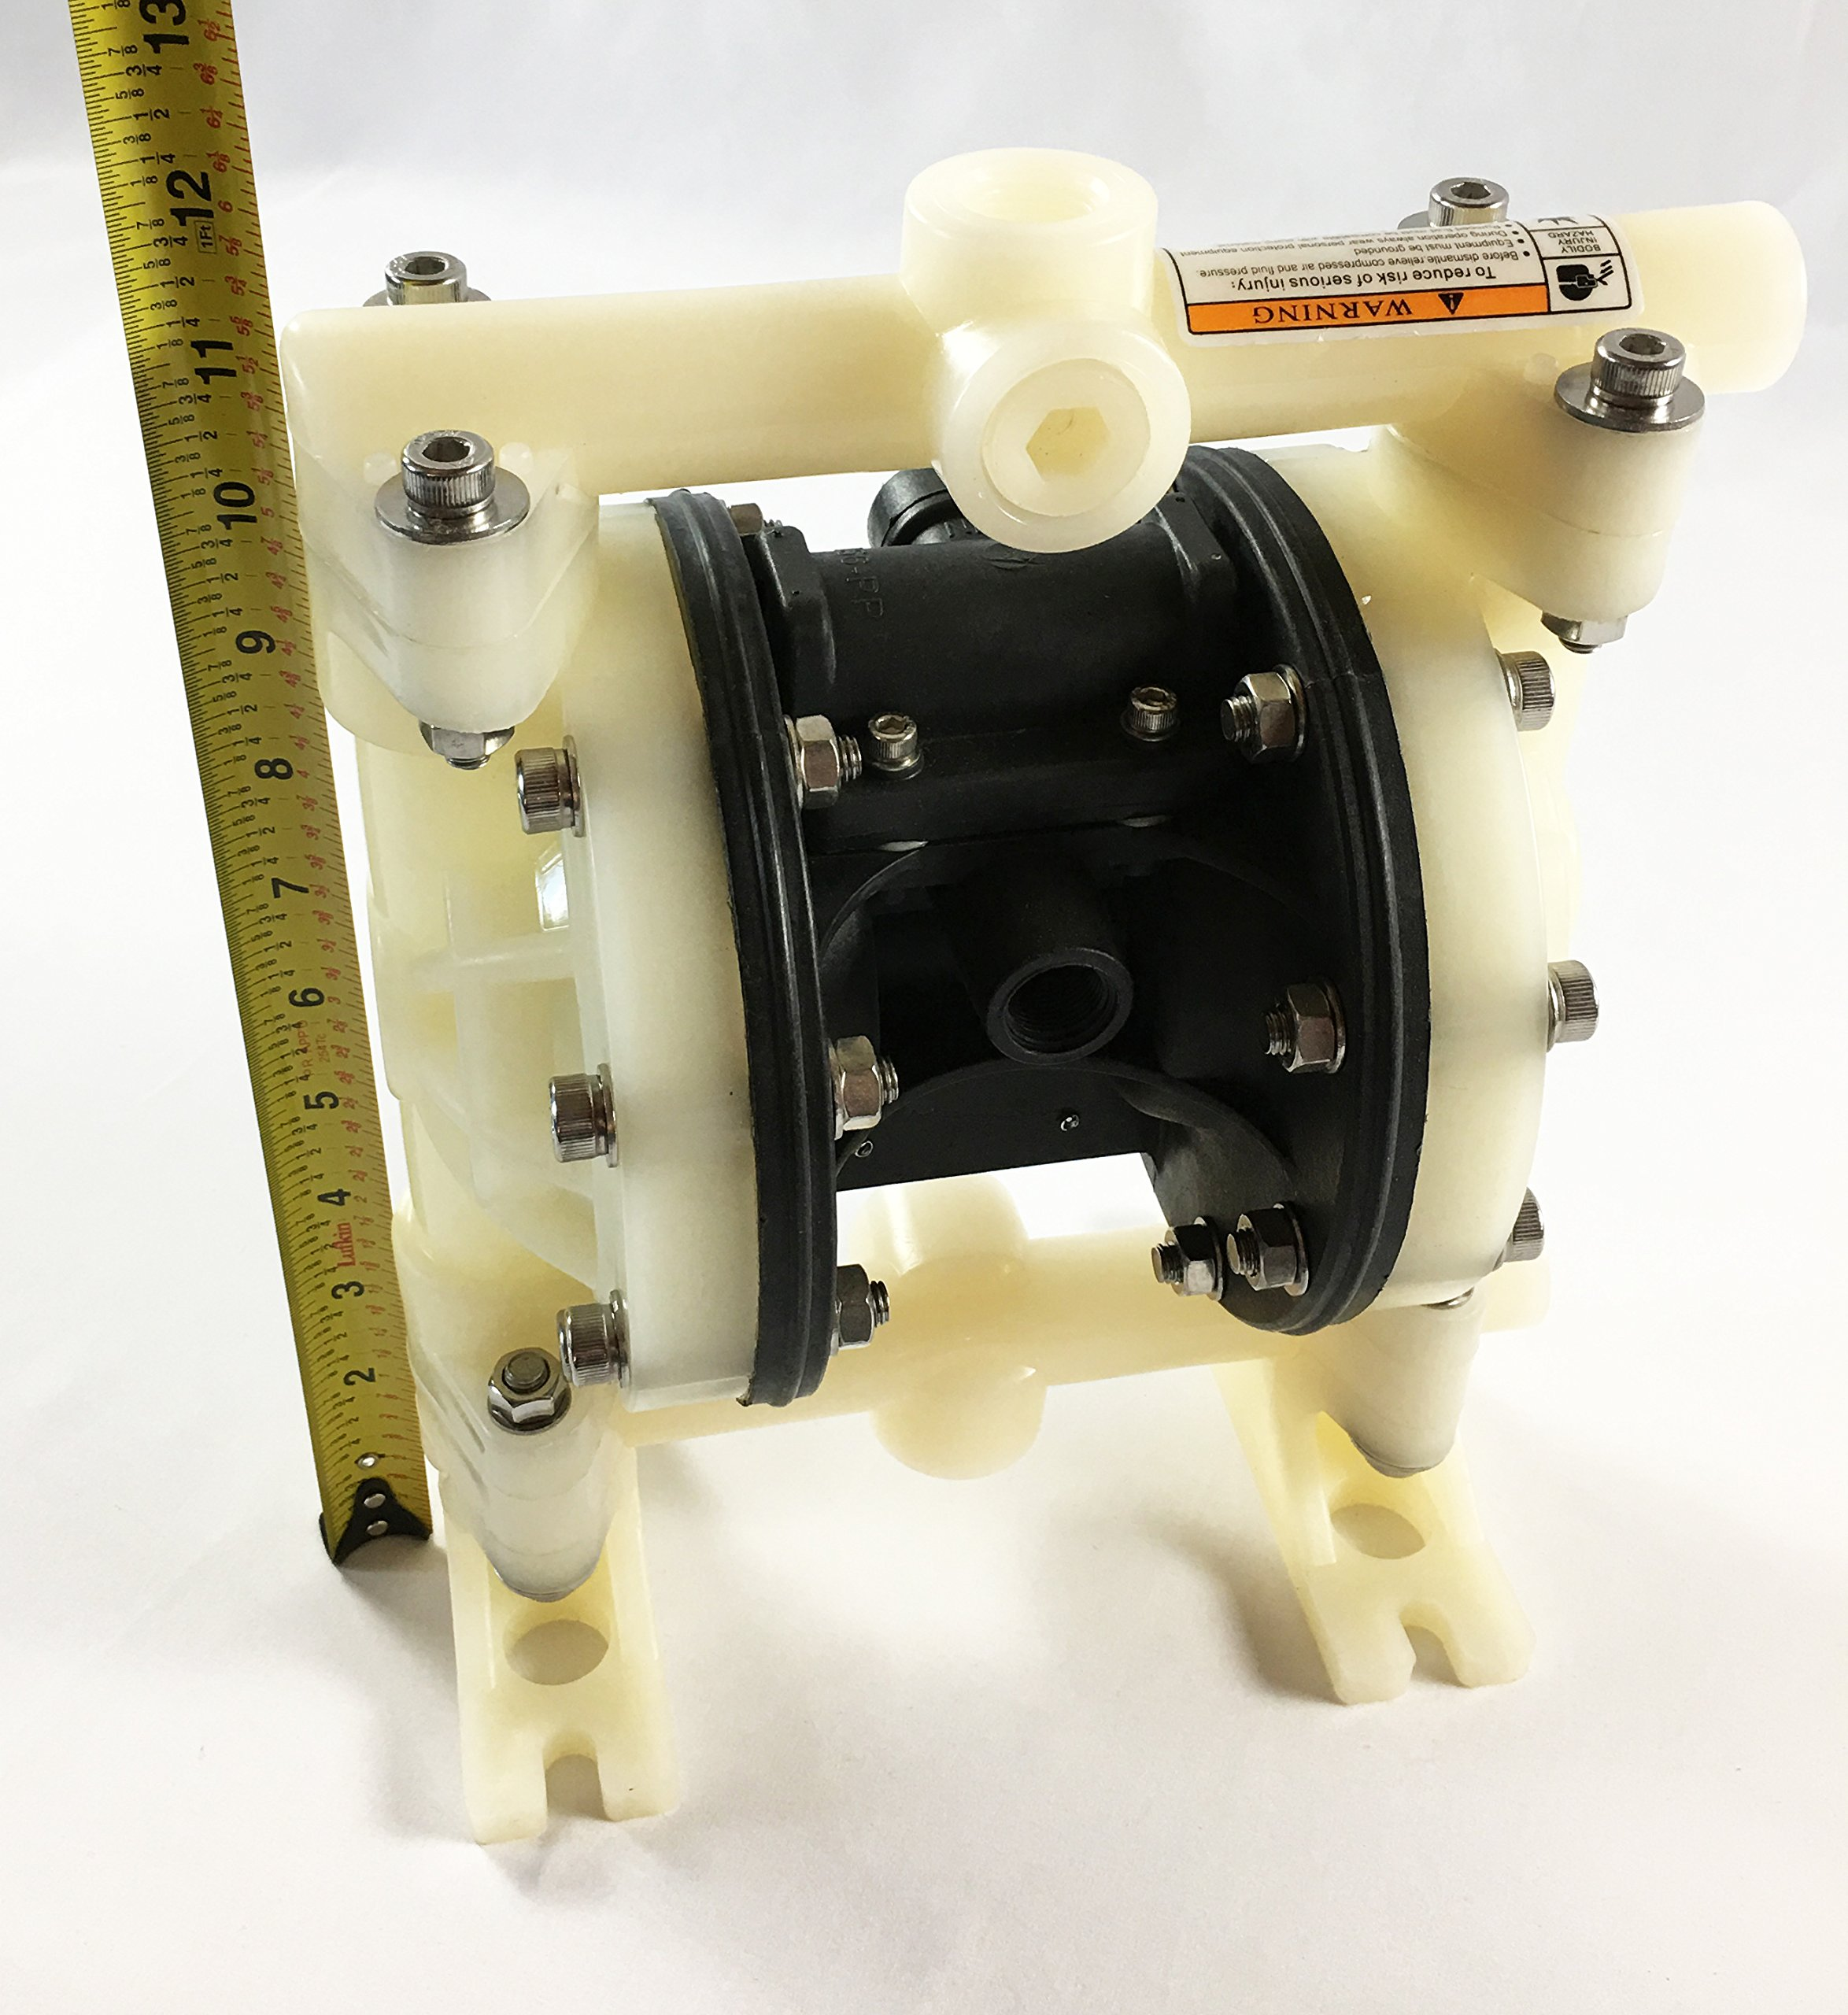 Double Diaphragm Air Pump PII.50 Chemical Industrial Polypropylene 1/2'' or 3/4'' NPT Inlet / Outlet by Plating International (Image #7)